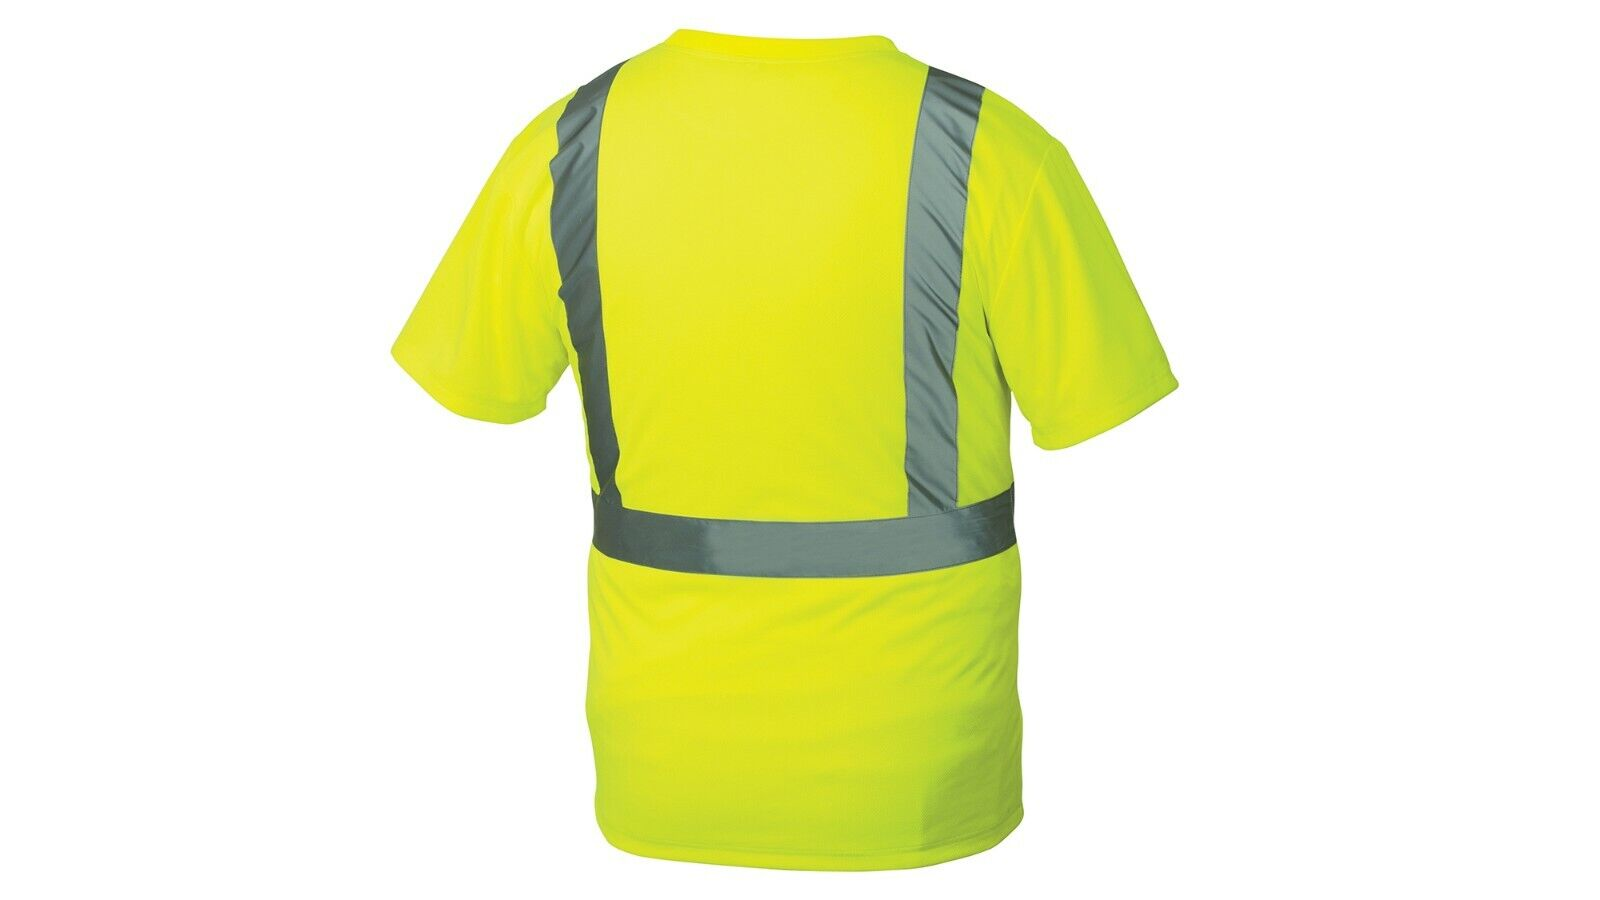 Pyramex RTS2110 Type R Class 2 Safety T-Shirt W/ Chest Pocket, Size M – 5XL Clothing, Shoes & Accessories